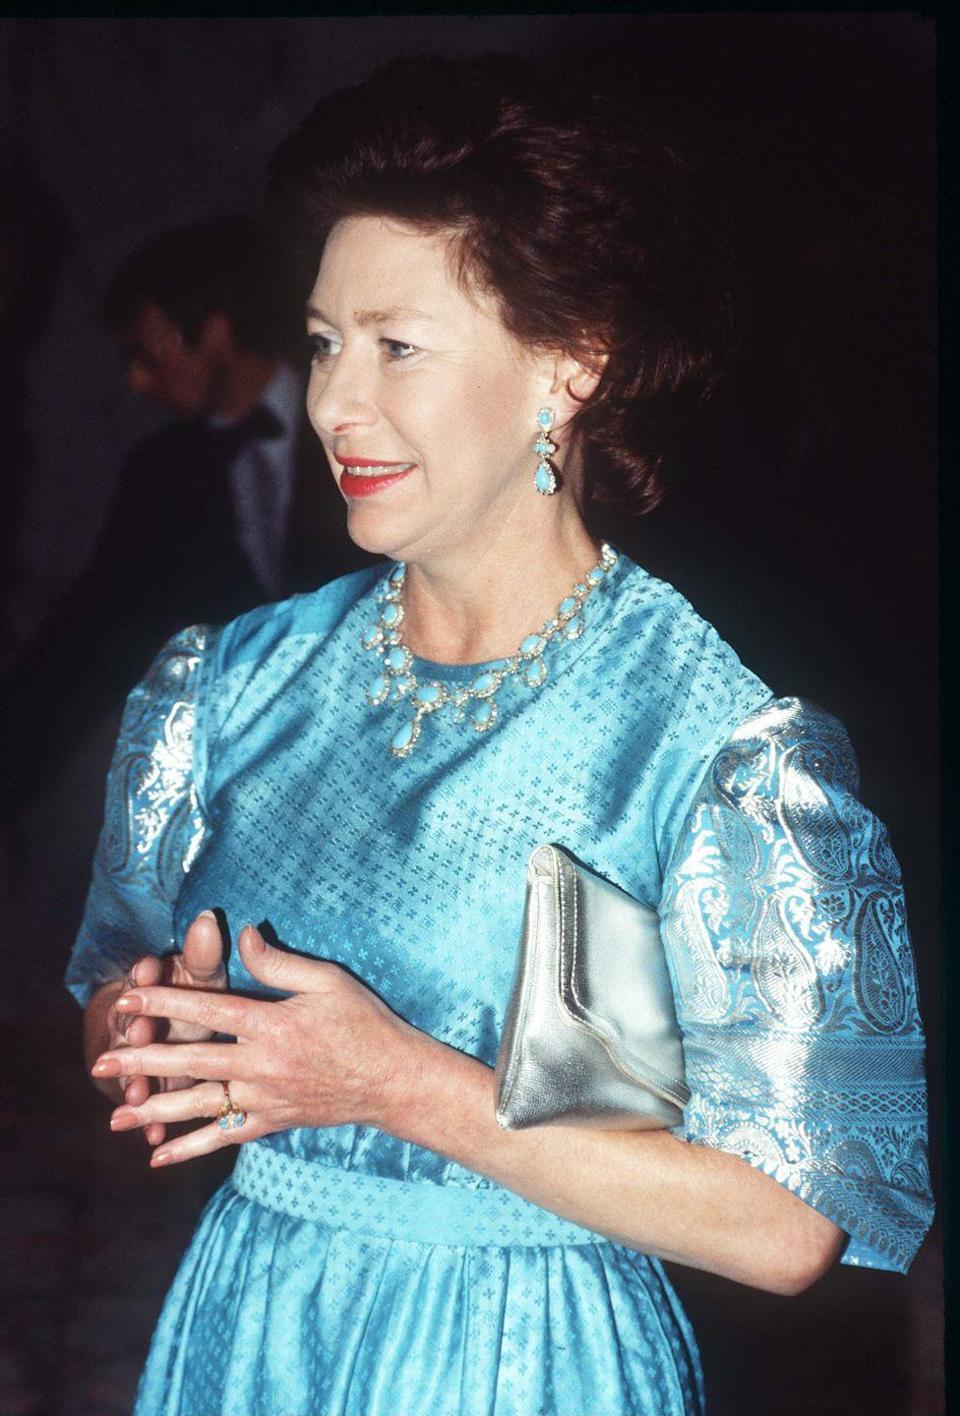 "<p>Princess Margaret was bequeathed an exquisite, Garrard-made set of <a href=""https://www.townandcountrymag.com/style/jewelry-and-watches/a20723522/princess-margaret-triumph-of-love-tiara/"" rel=""nofollow noopener"" target=""_blank"" data-ylk=""slk:Persian turquoise pieces"" class=""link rapid-noclick-resp"">Persian turquoise pieces</a> from the Queen Mother, who in turn received them as a wedding gift from her father-in-law King George V. Sadly, the parure—which includes a necklace, earrings, tiara, brooch—hasn't been seen since Margaret's death, and it isn't clear if it is now in the possession of one of her children, or has been returned to the royal vaults. Only time will tell!</p>"